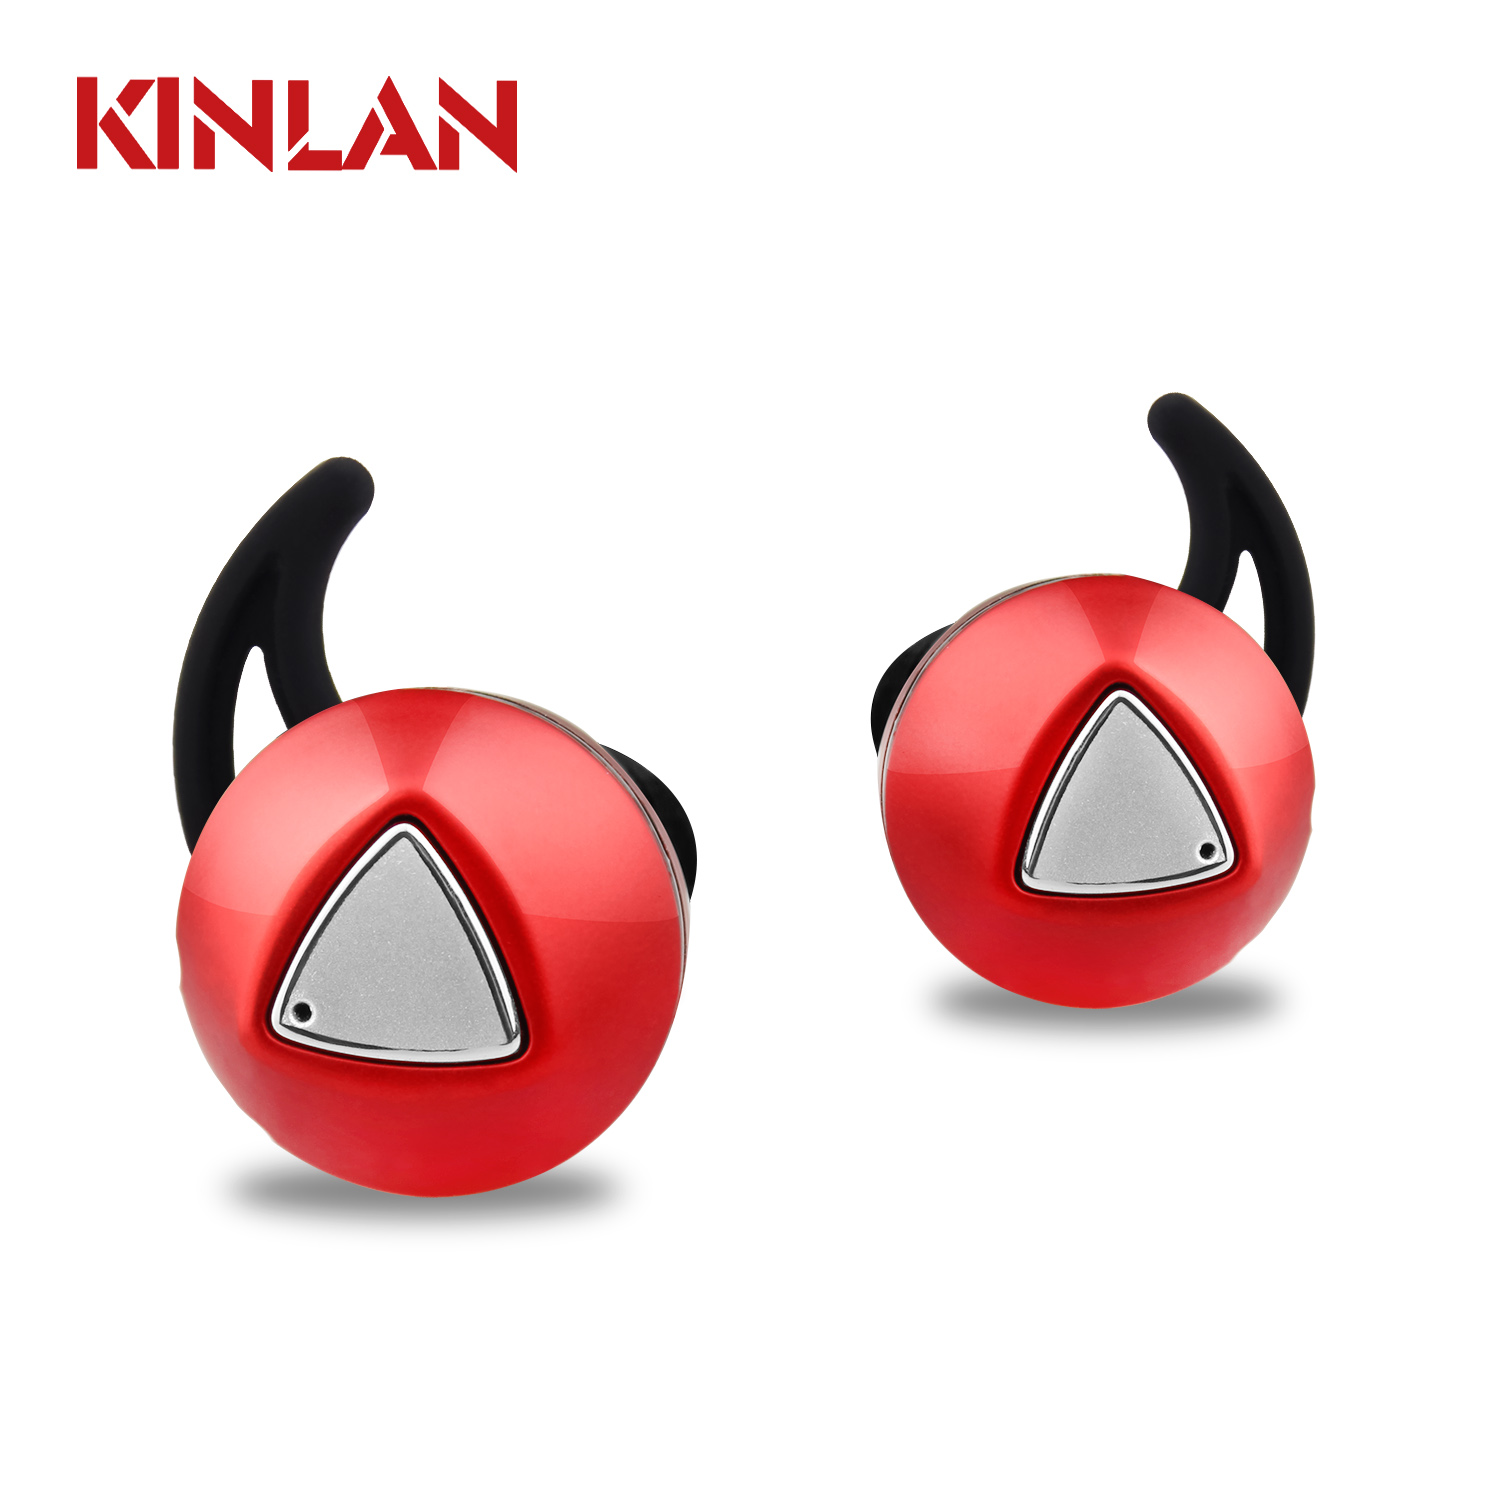 KINLAN Hot Selling noise cancelling true wireless earbuds V4.2